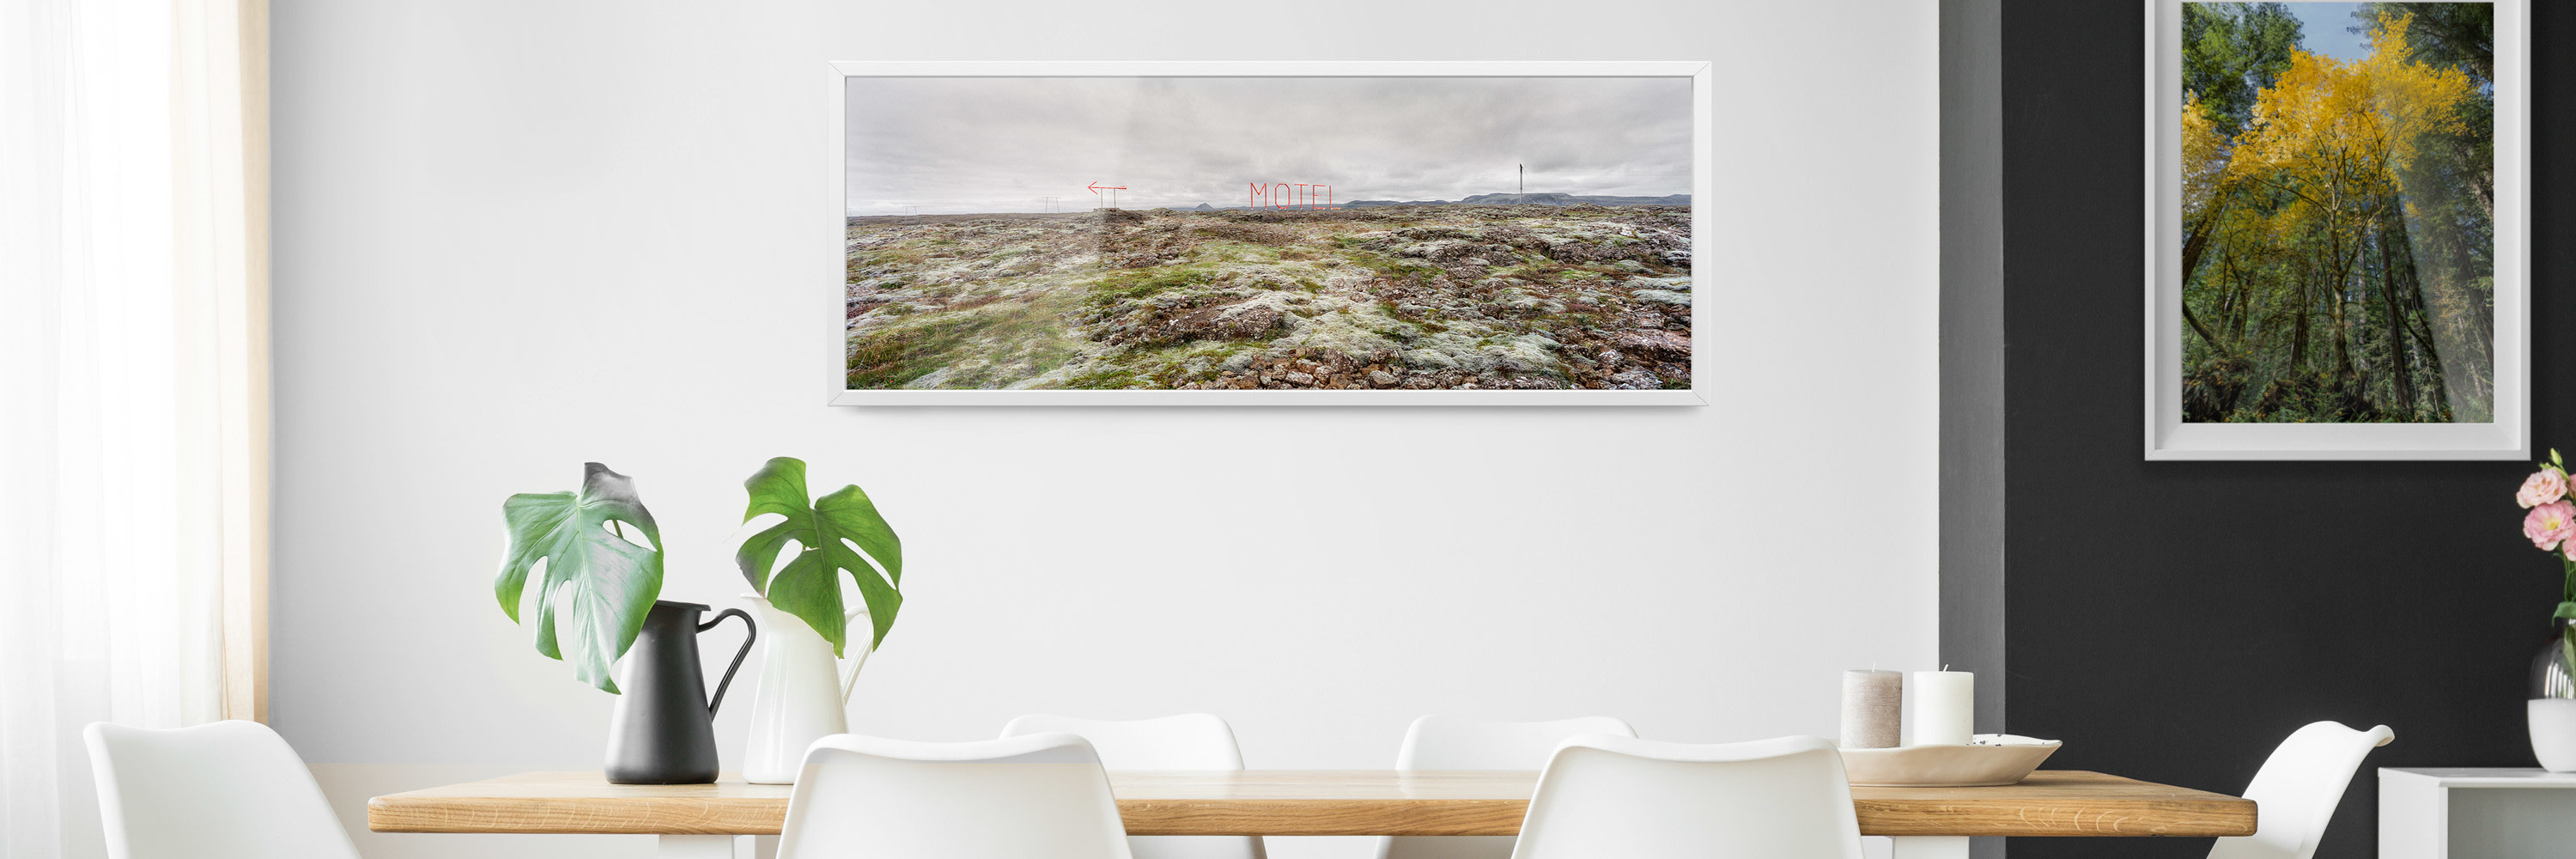 <div class='title'>           Dining Pano Banner         </div>